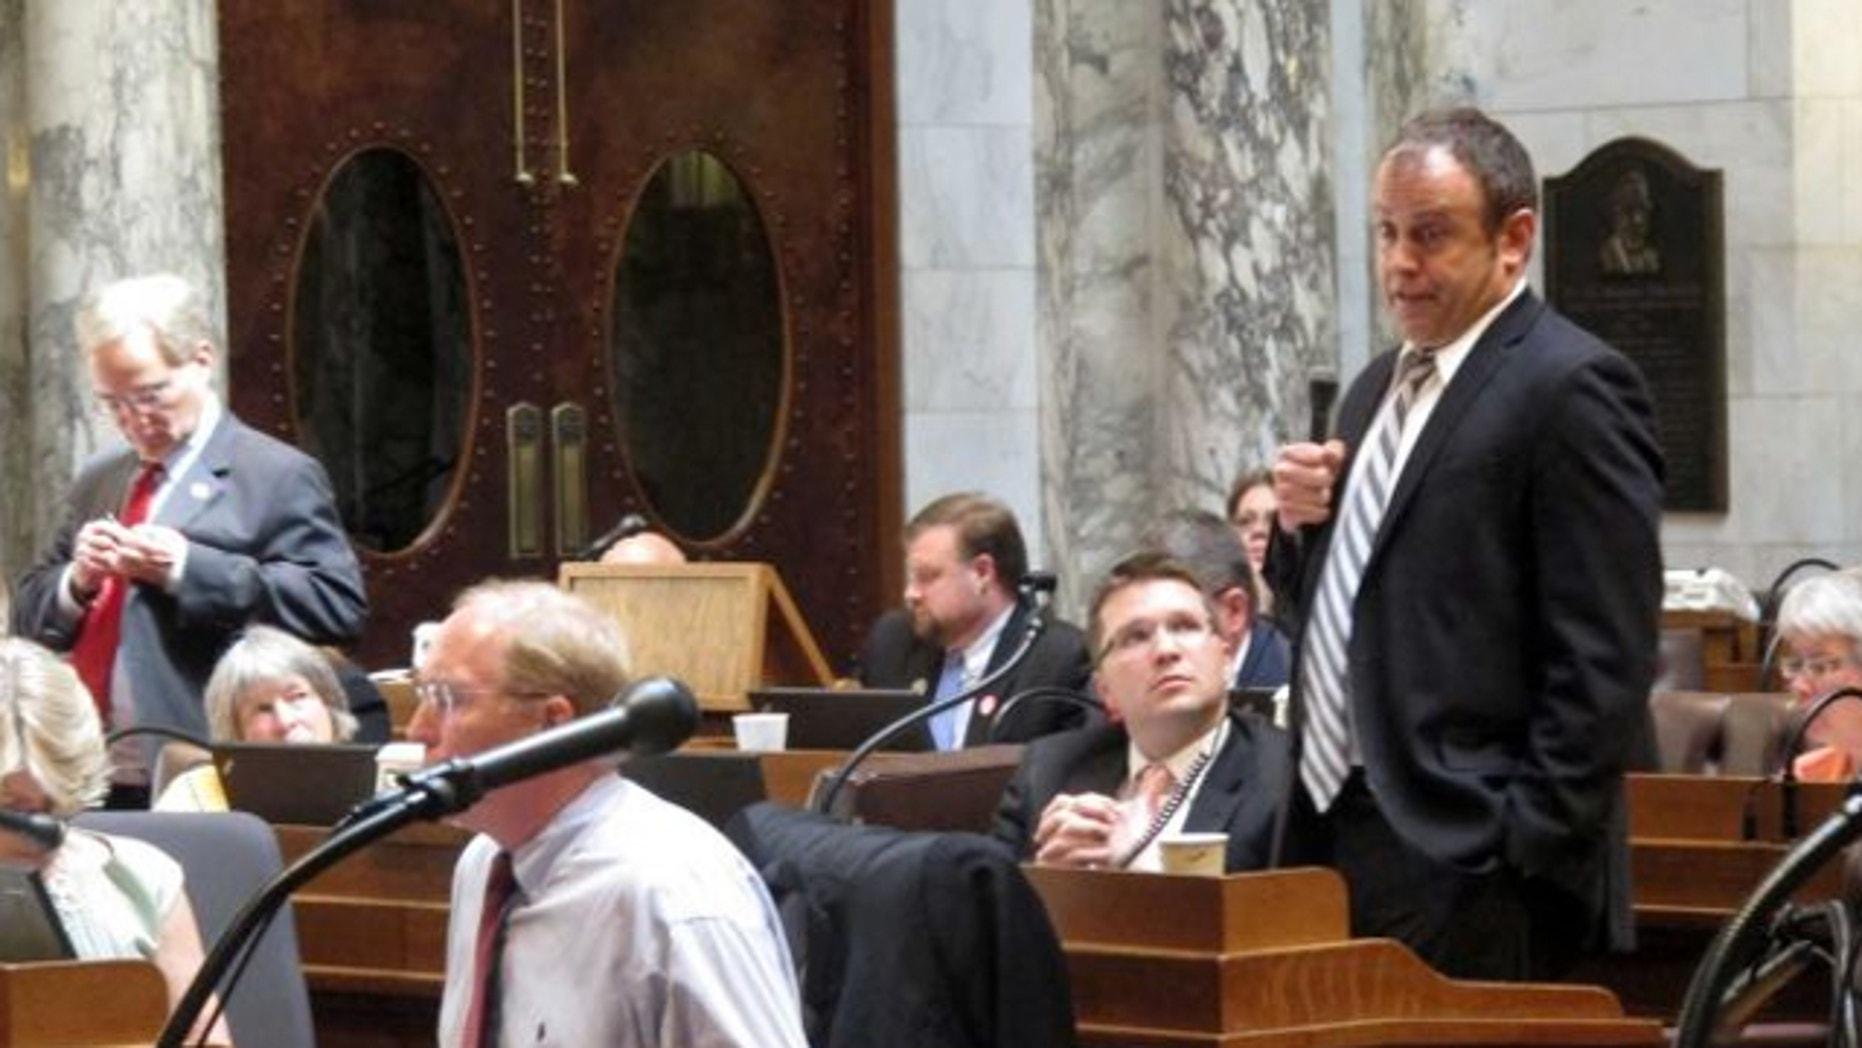 June 13, 2013: Democratic state Rep. Gordon Hintz, of Oshkosh, speaks during debate in the state Assembly in Madison, Wis.